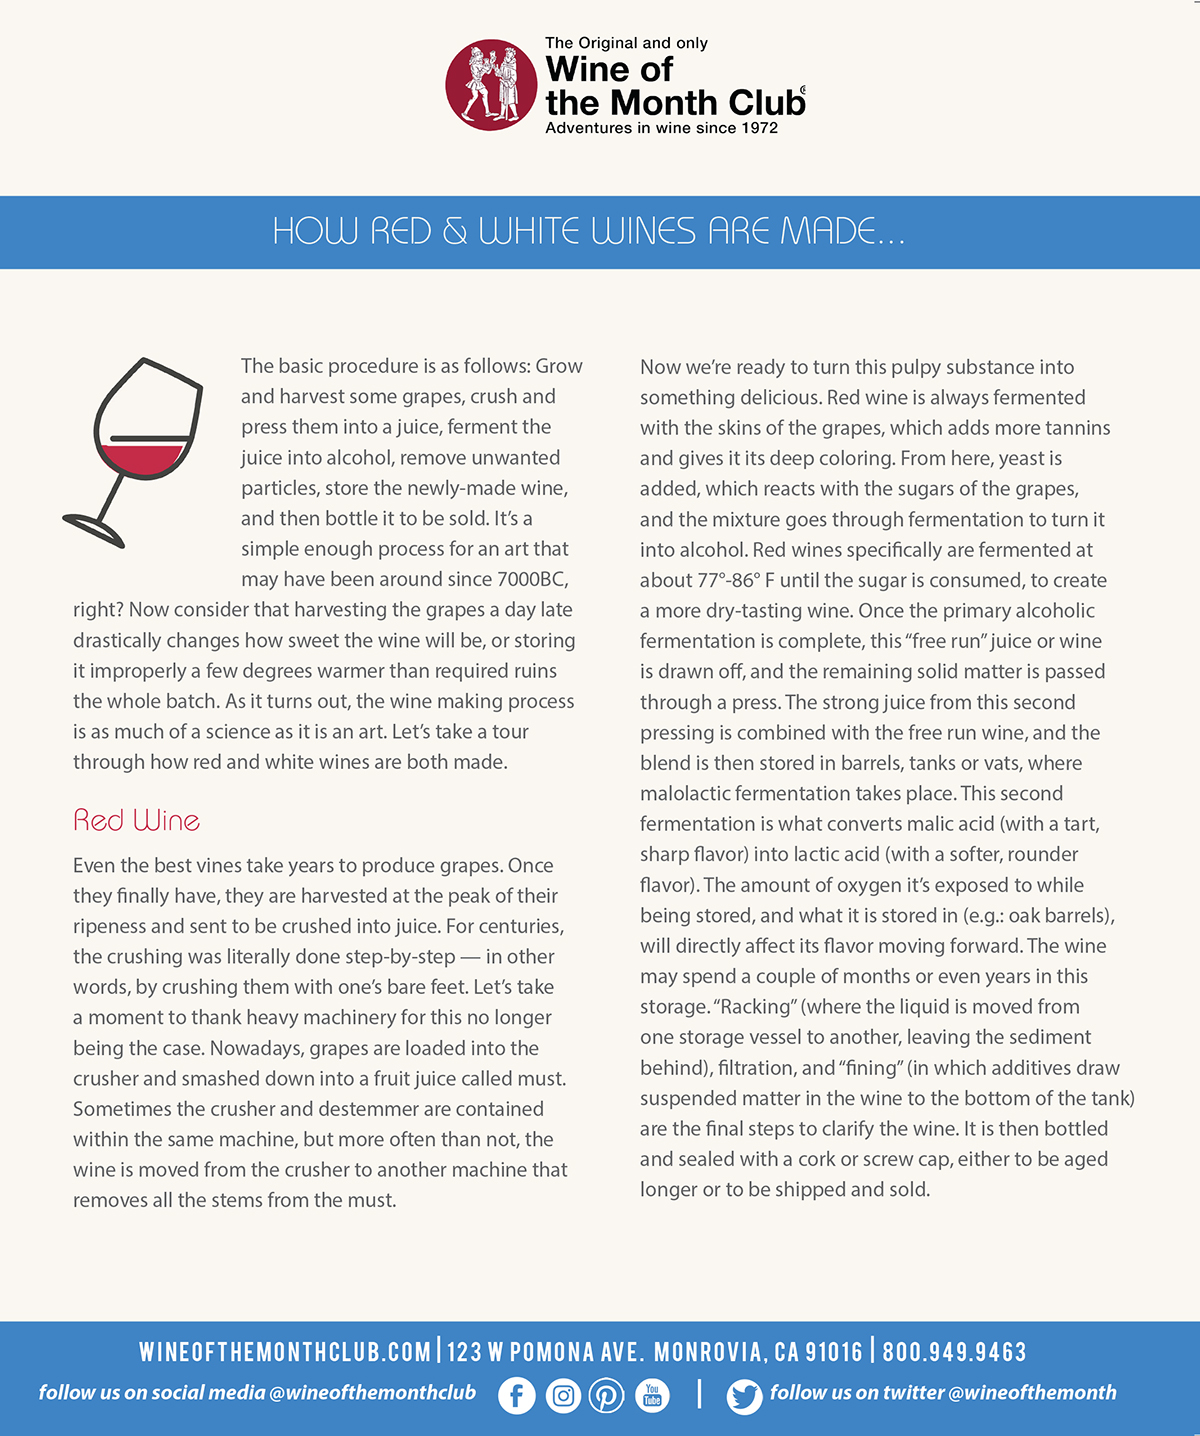 The Differences Between Red & White Wine Making